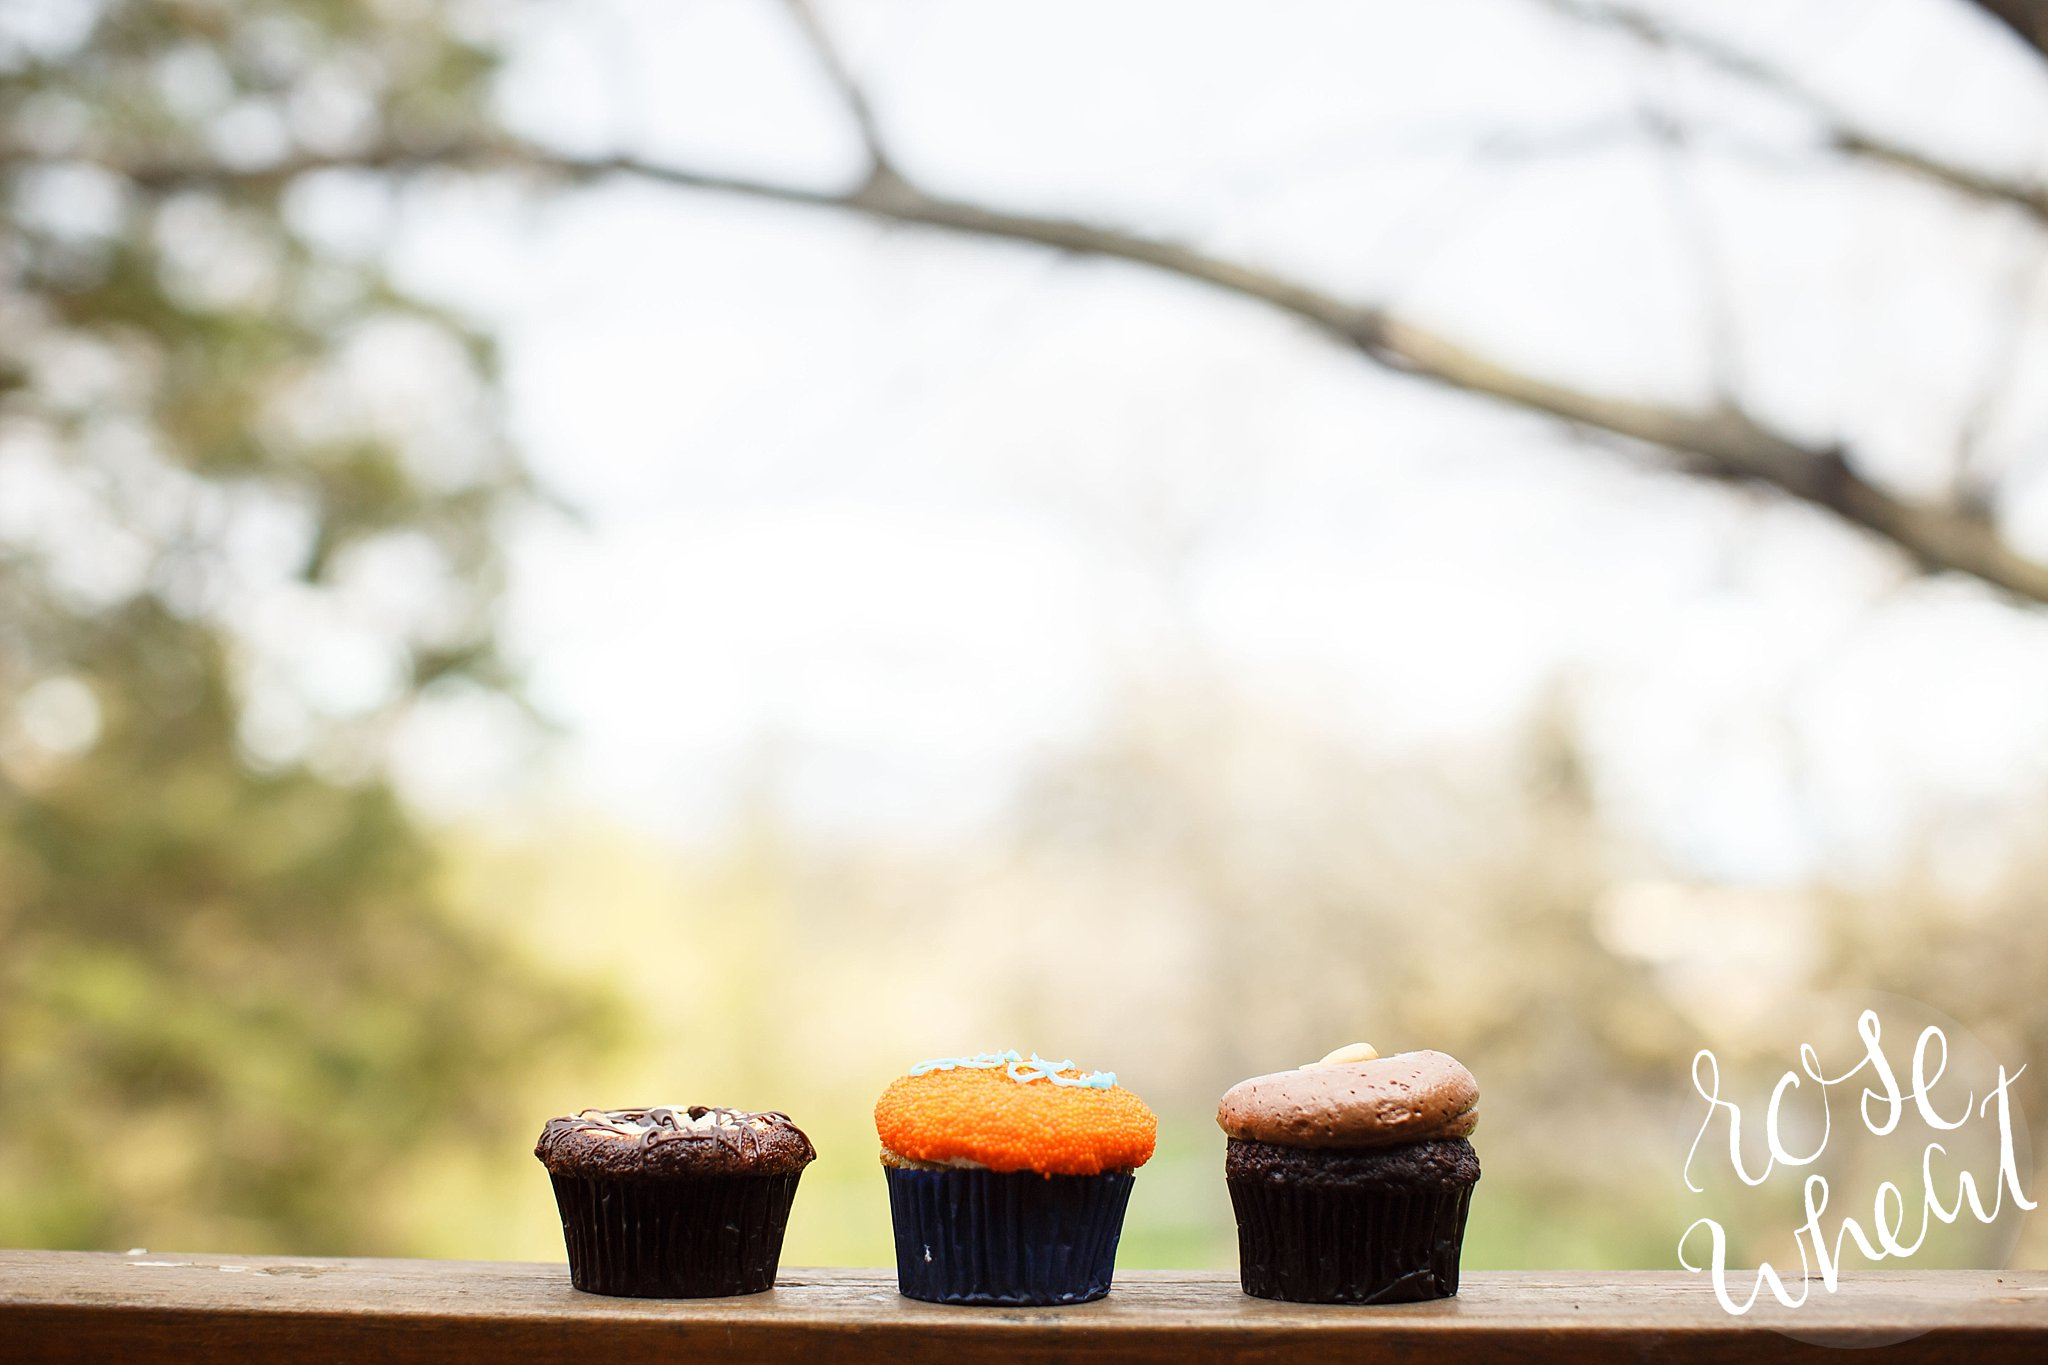 """We got some cupcakes from the Mall of America to celebrate Shelley's birthday! Mine (the middle one that reads """"Yay!"""") was vanilla filled with chocolate mousse. Heavenly!"""